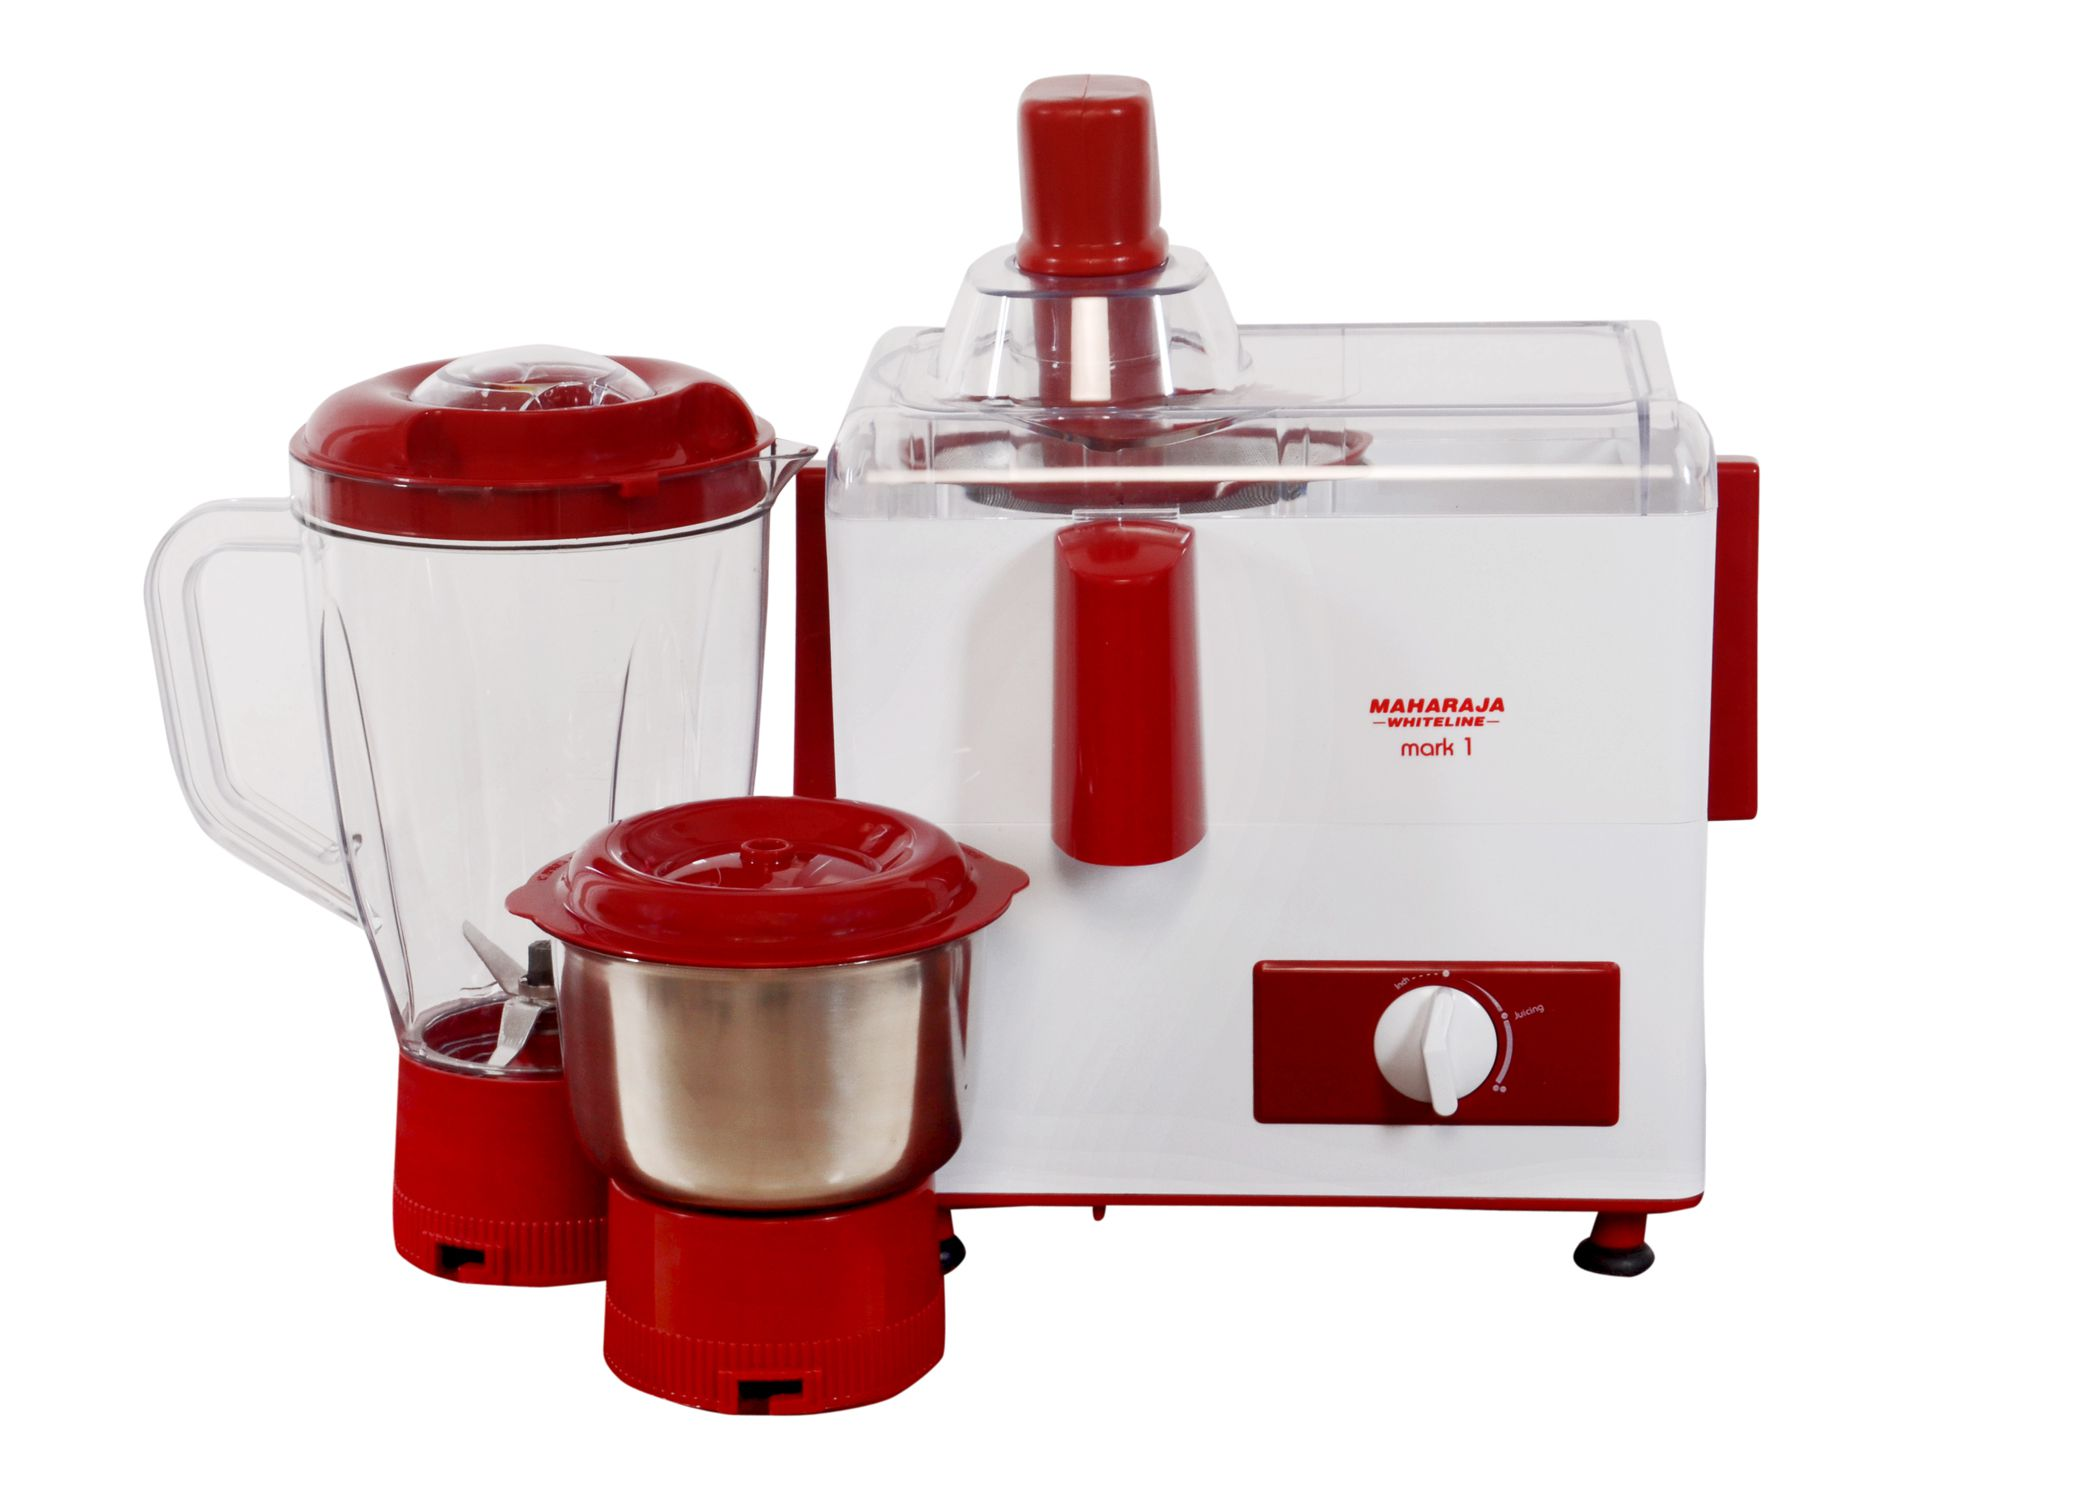 100 snapdeal promo code for kitchen appliances pureit ultim